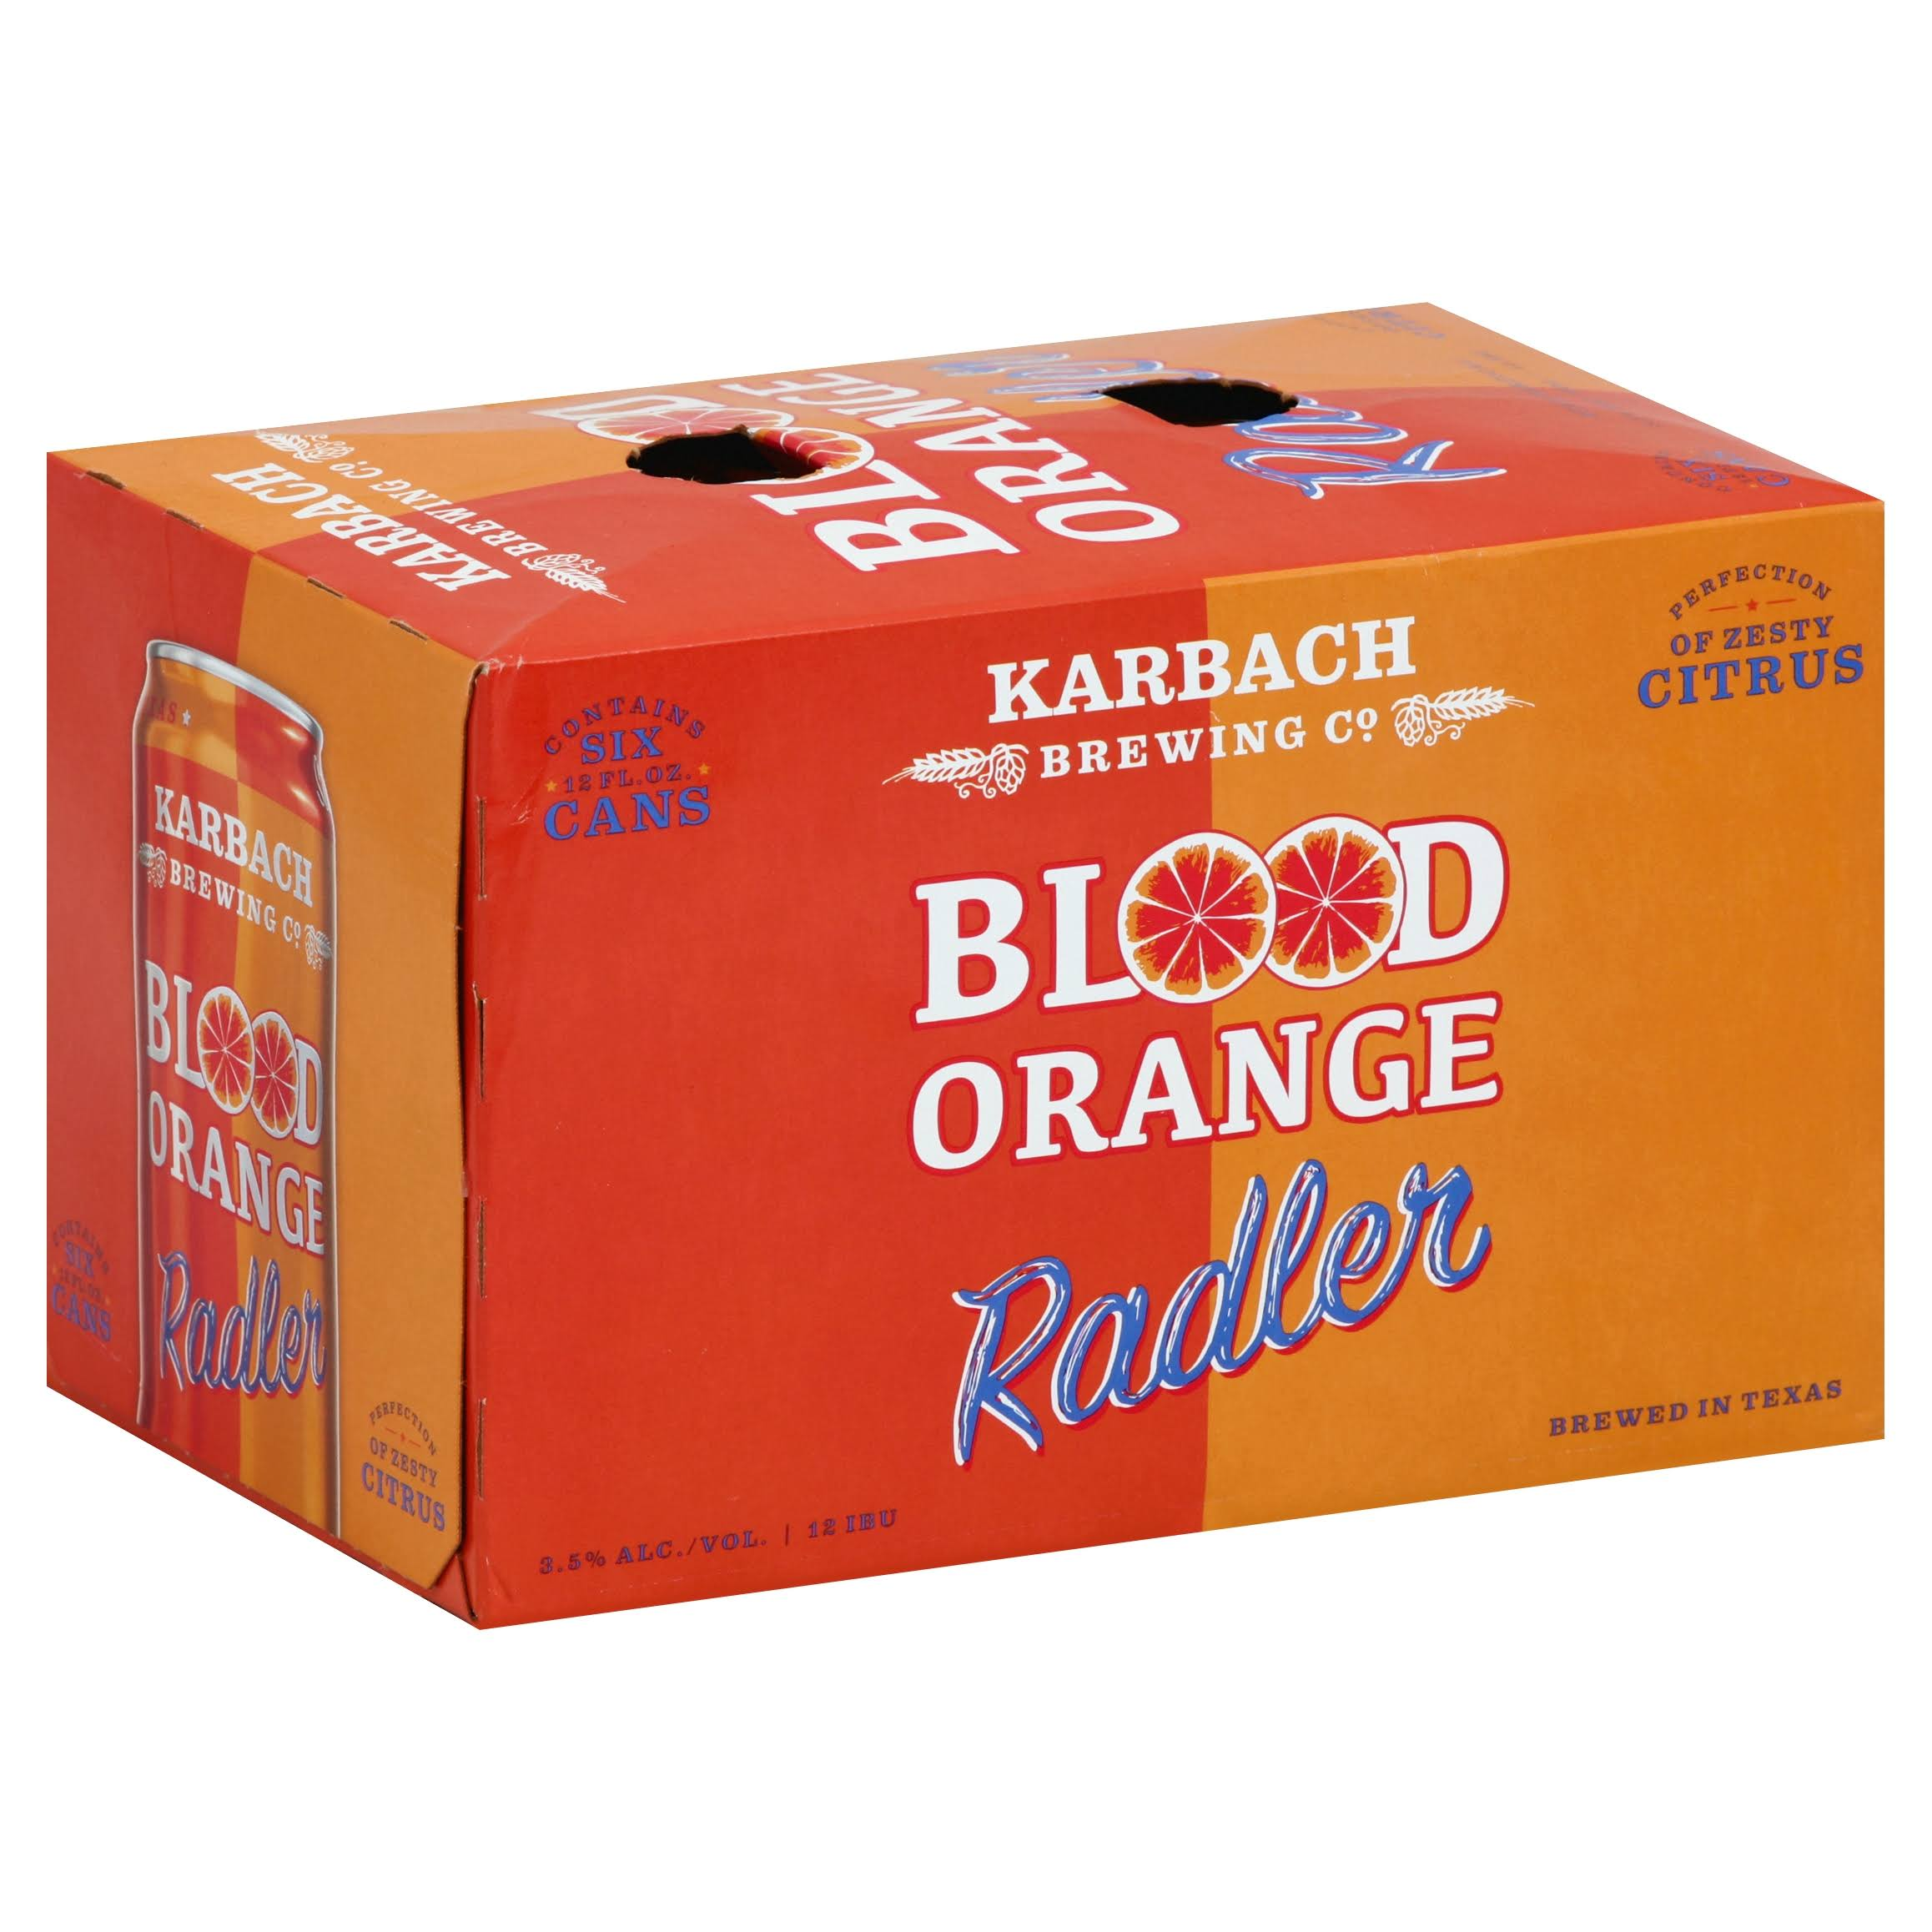 Karbach Beer, Radler, Blood Orange - 6 pack, 12 fl oz cans